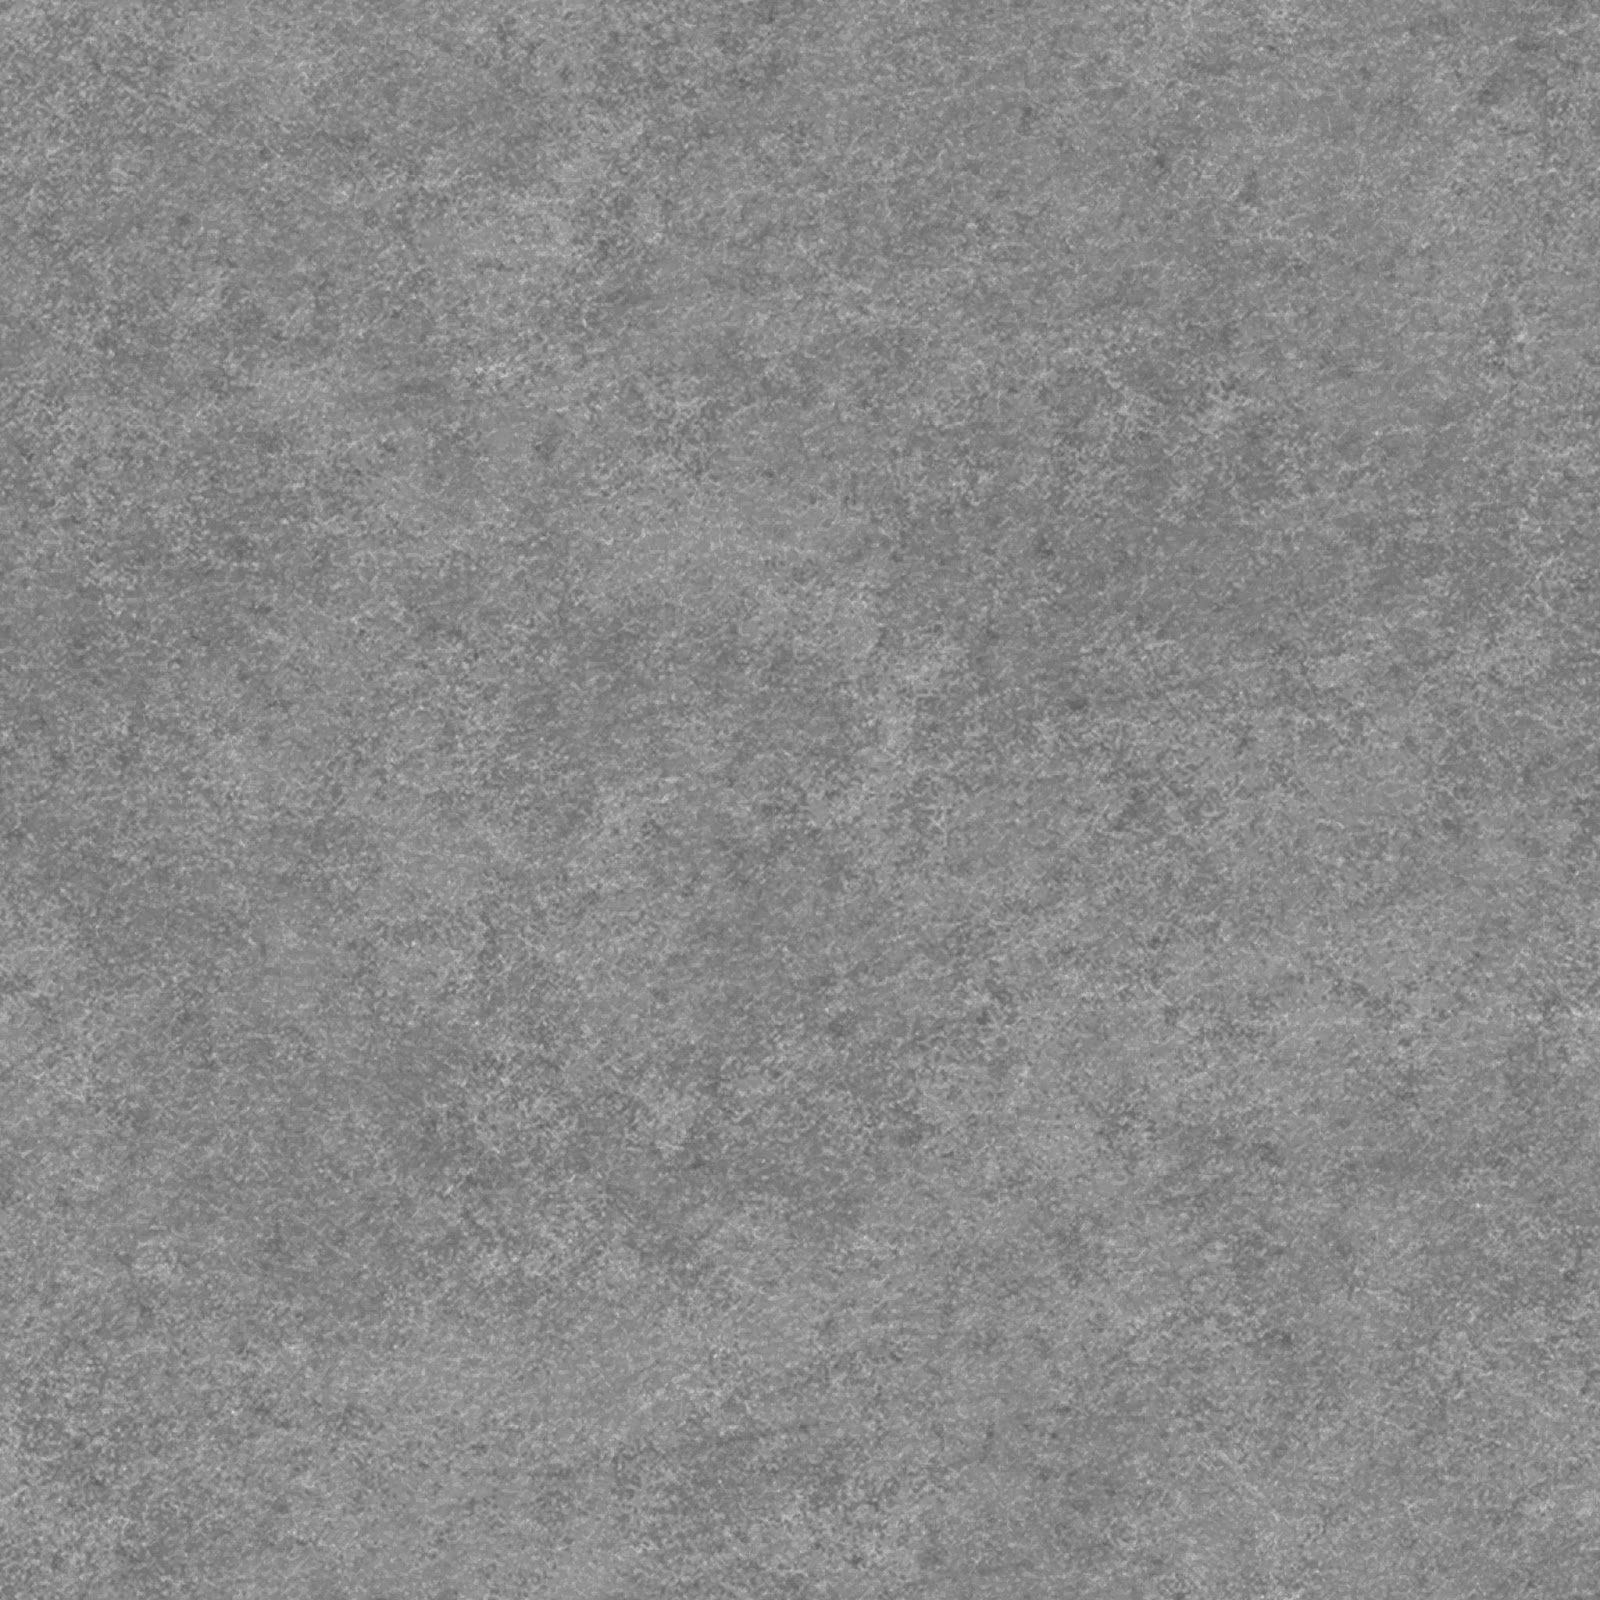 High Resolution Textures Free Seamless Metal Textures